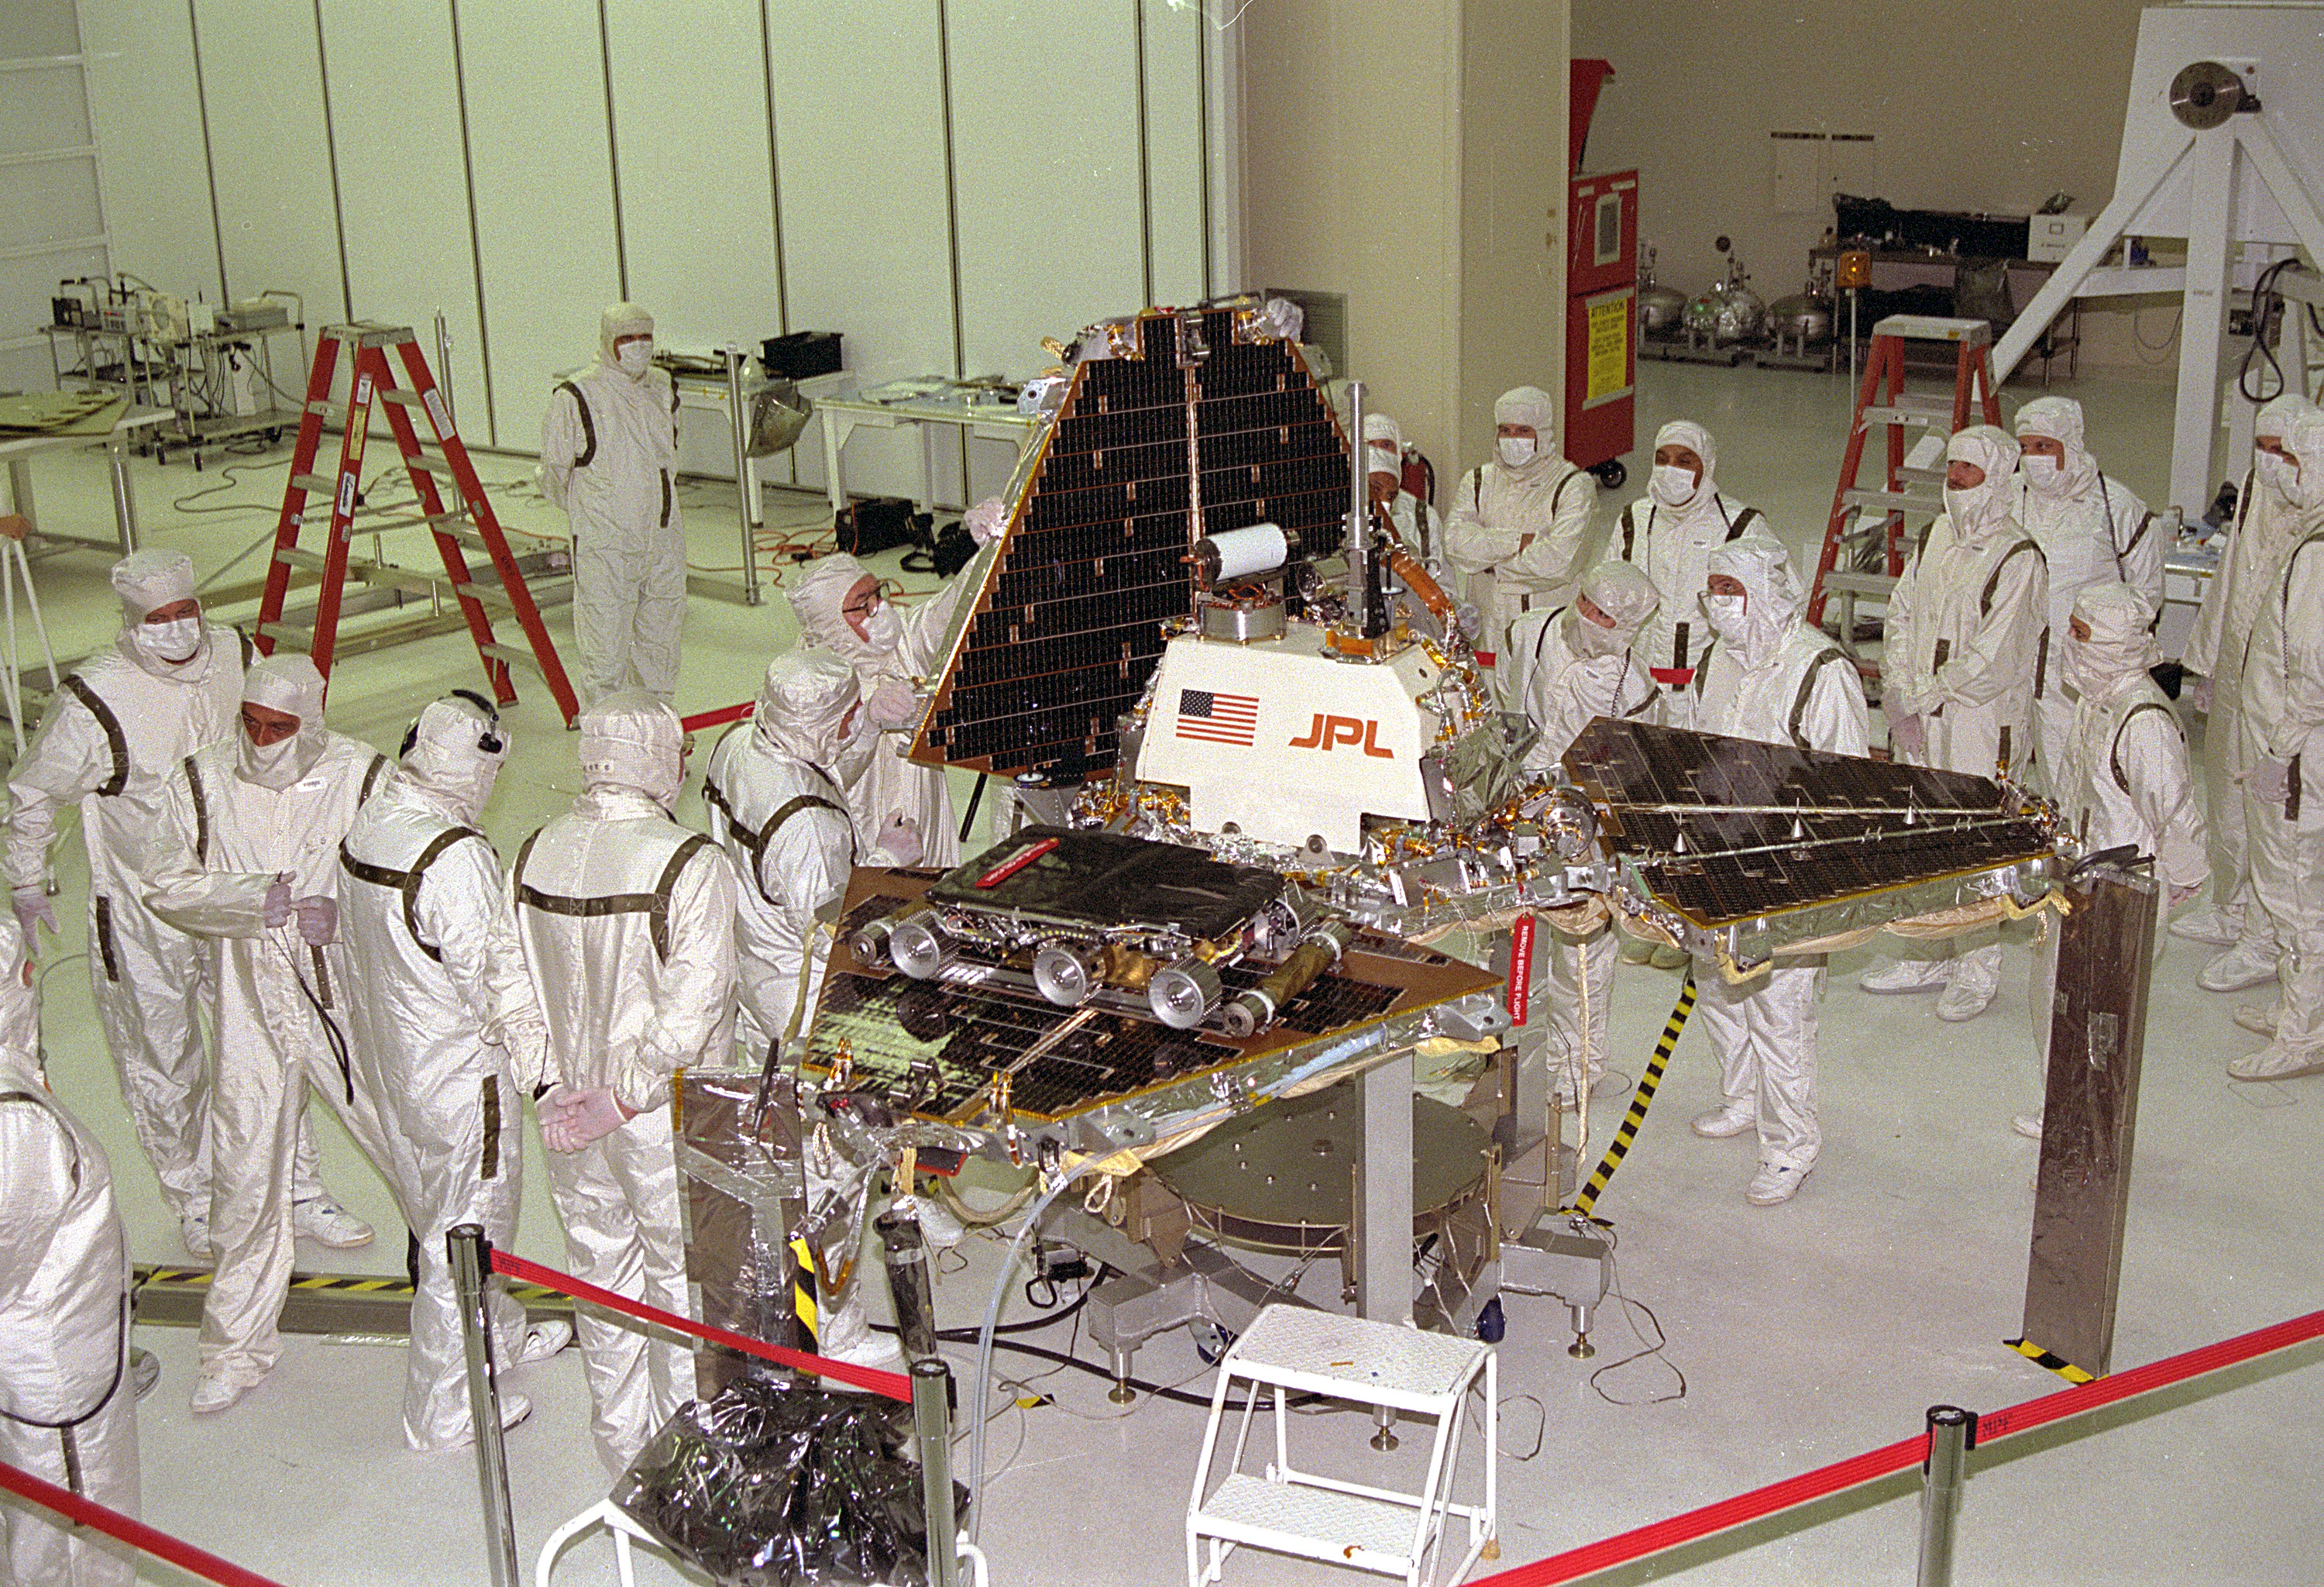 Mars_Pathfinder_Lander_preparations.jpg